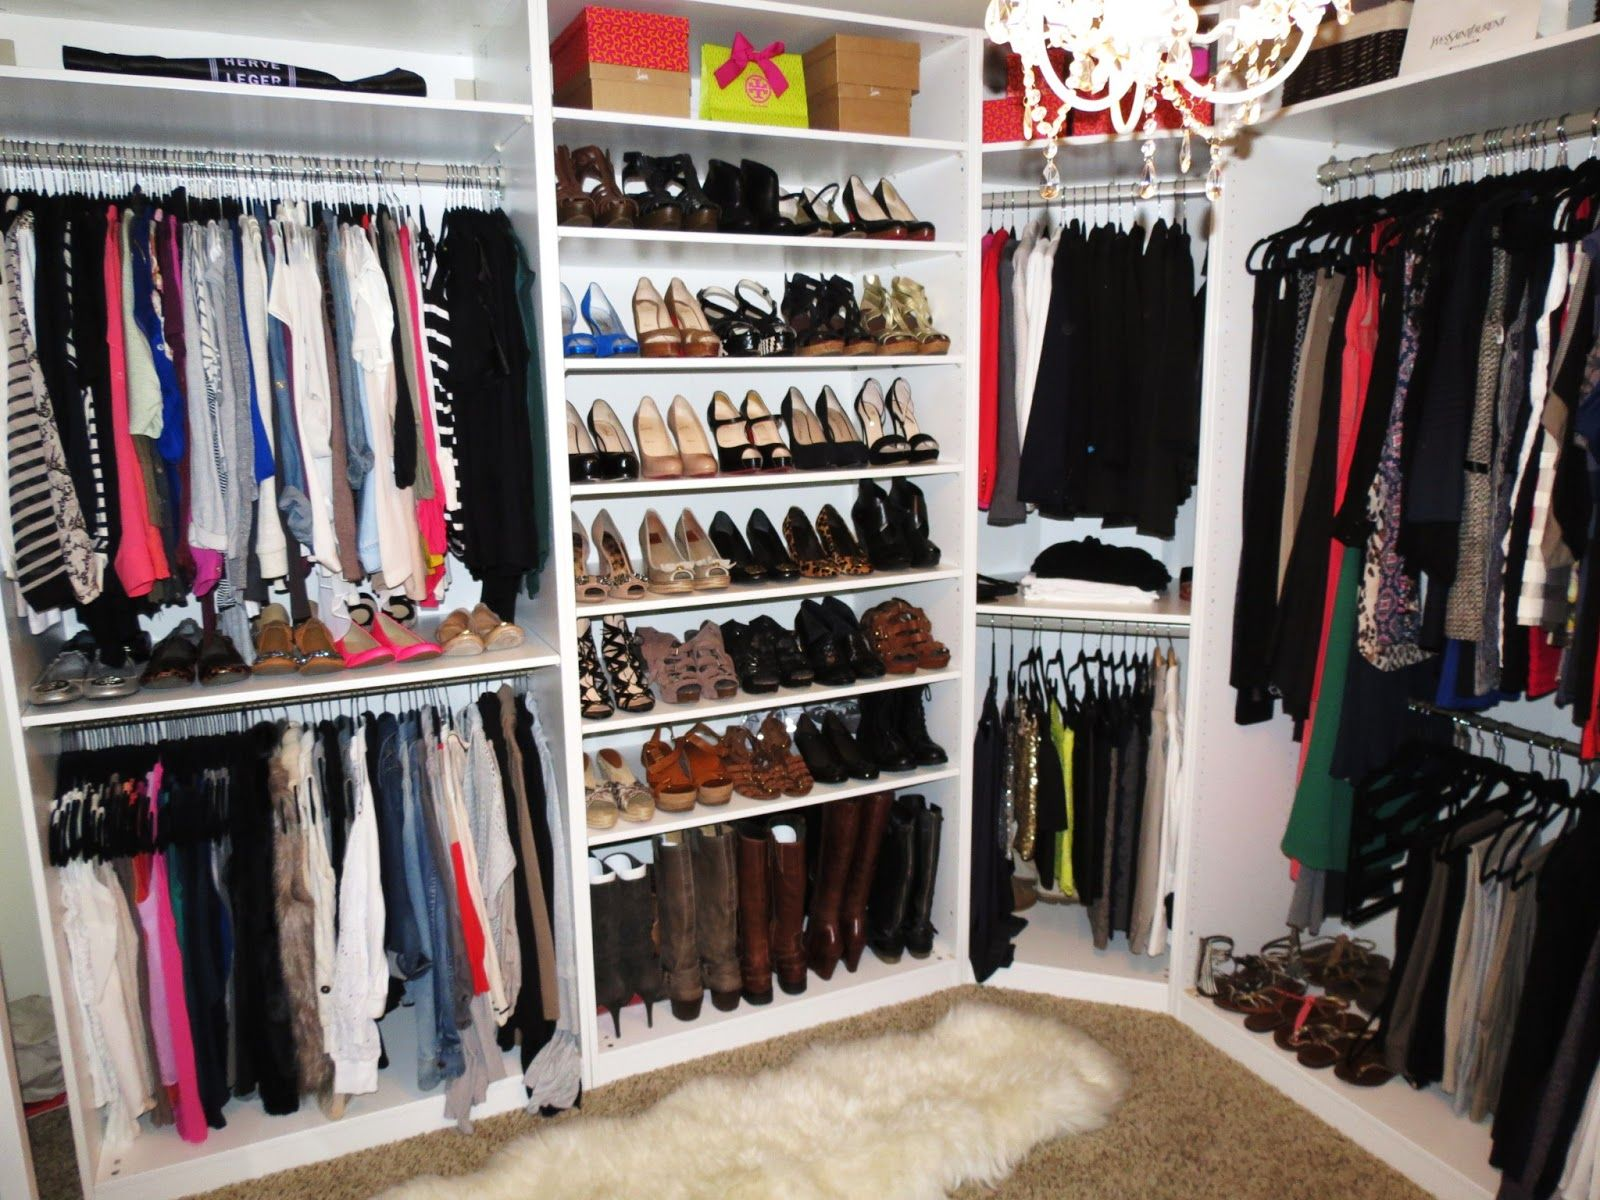 Extraordinary Bedroom Furniture With Shoe Storage For Closet Organizer White Wooden Walk In Shes And Hanging Clothes Also Brown Rug As